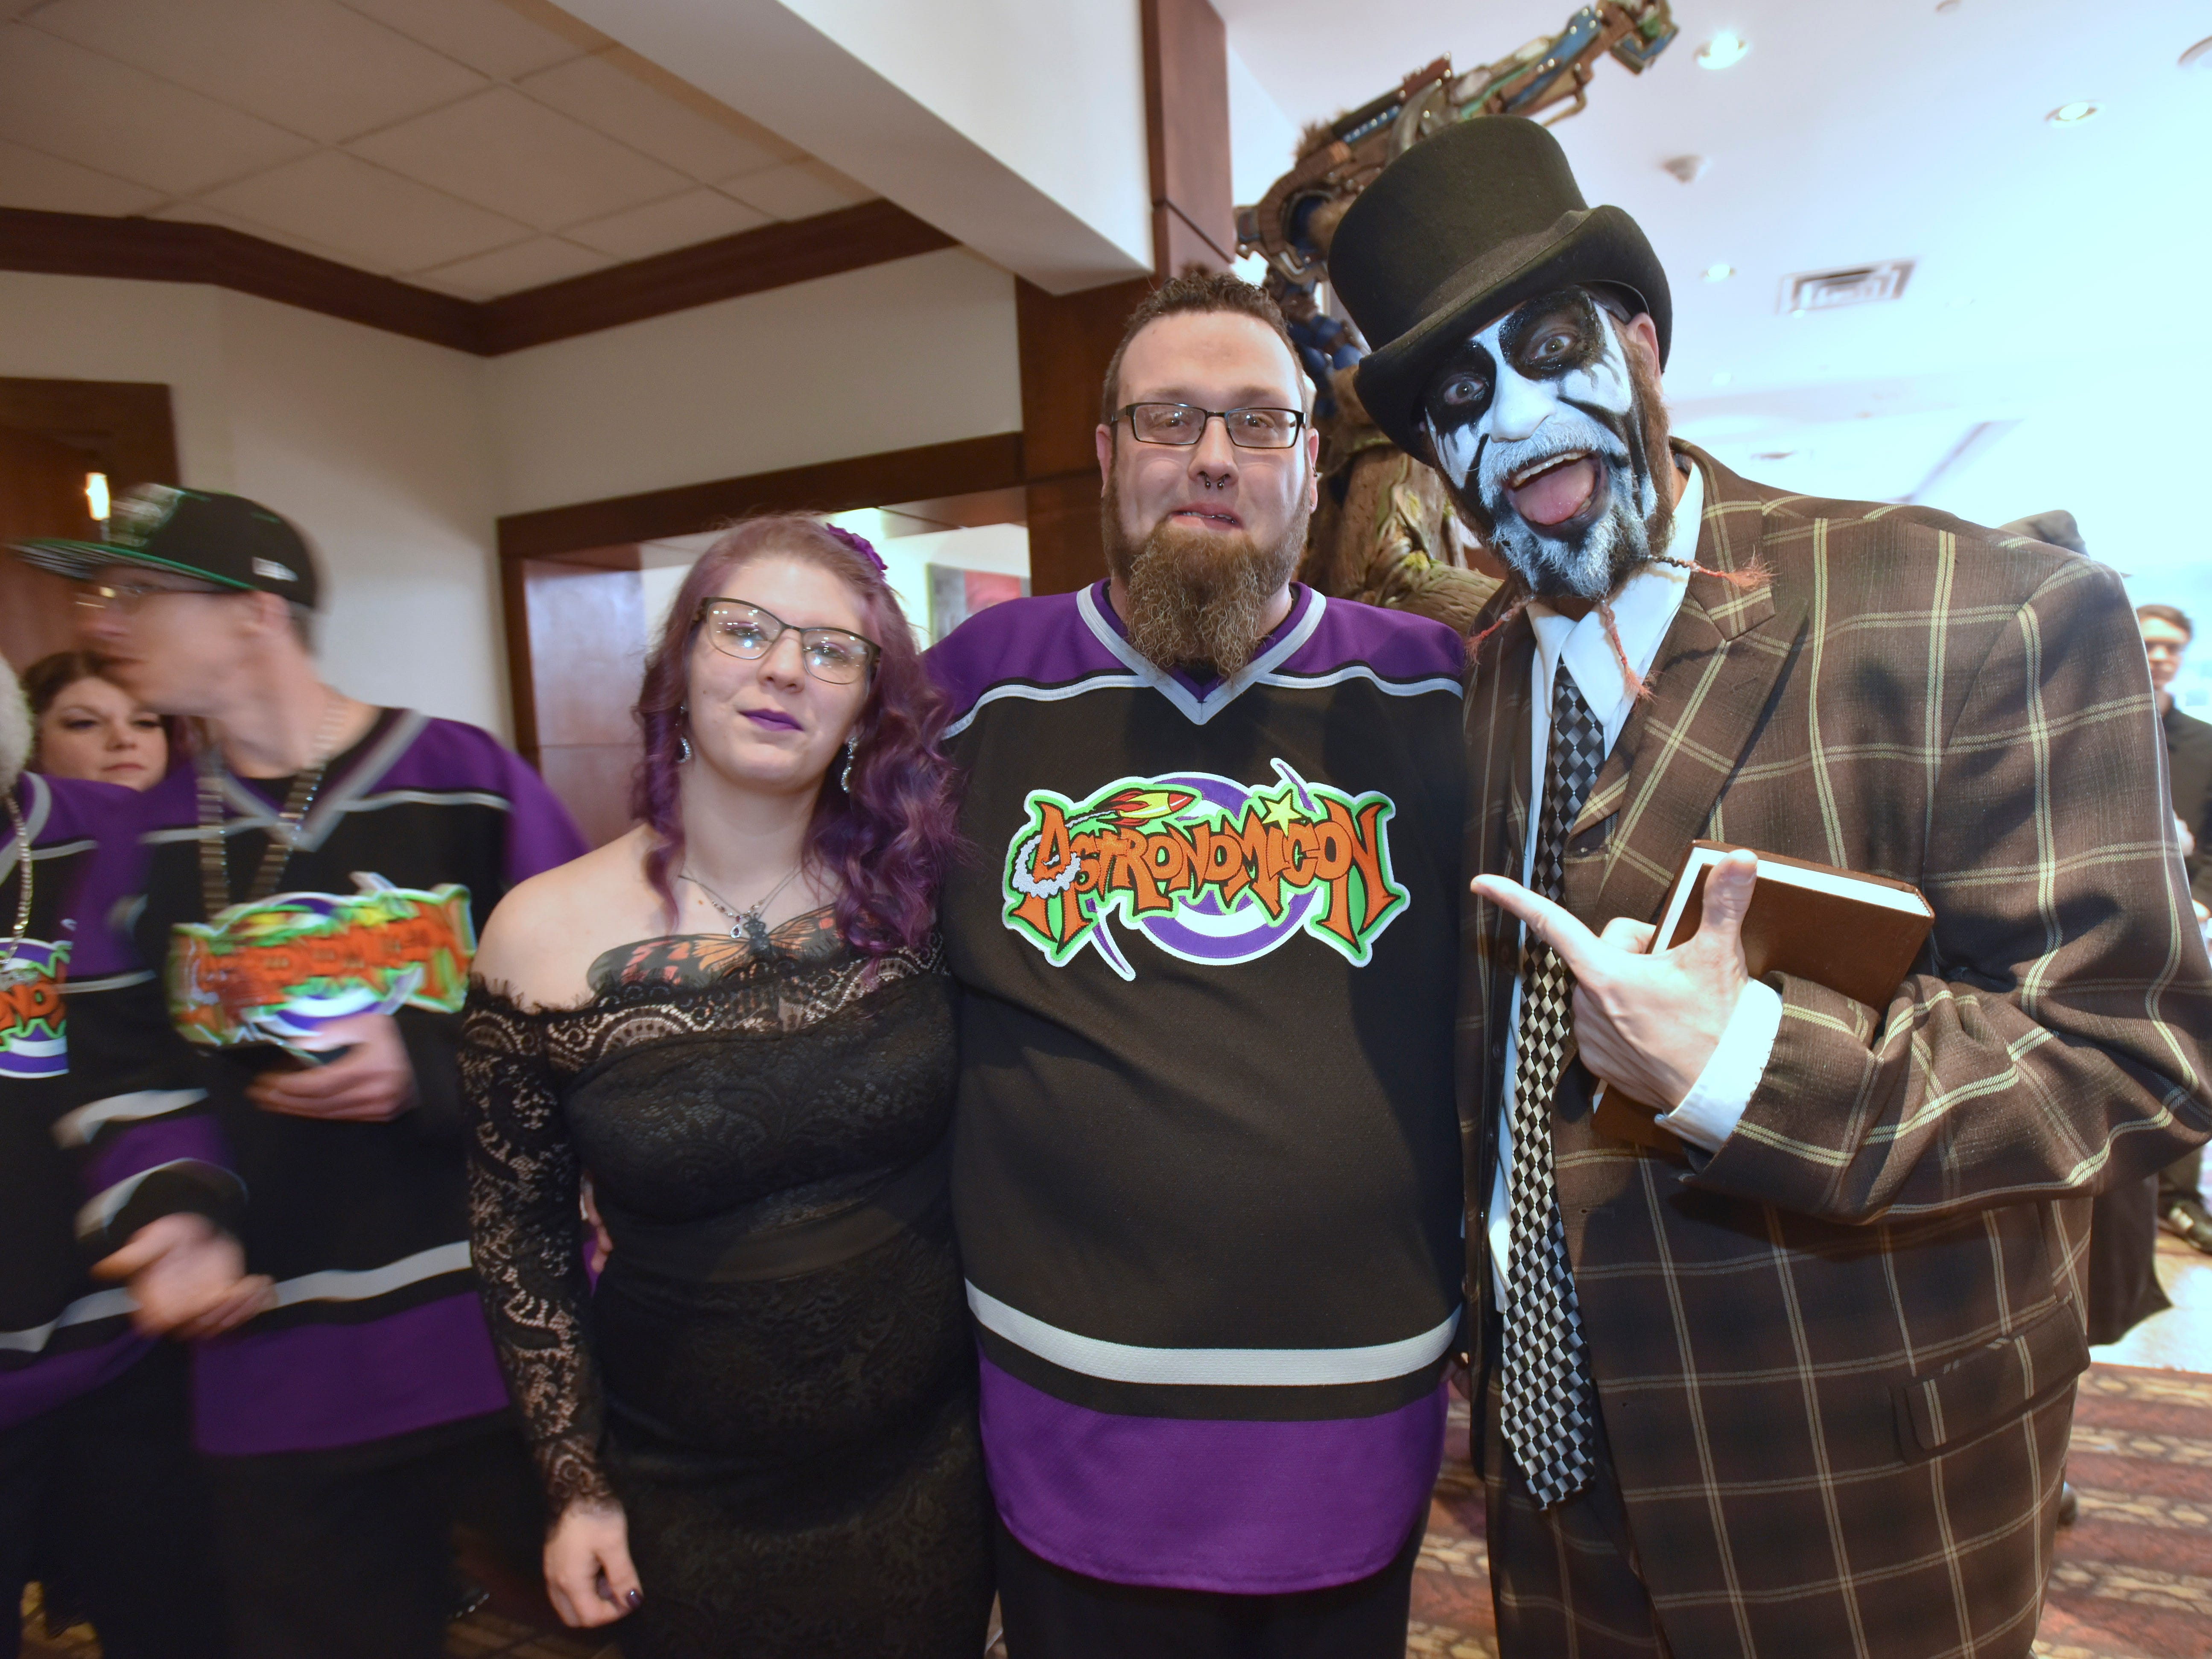 Amy Feero-Marr, left, 24, stands with her new husband, Bryce Marr, center, 32, both of Springfield, Illinois, stand with ordained minister 'Blaze Ya Dead Homie,' right, who is portrayed by Chris R, of Detroit, after he marries the couple at Astronomicon 2.